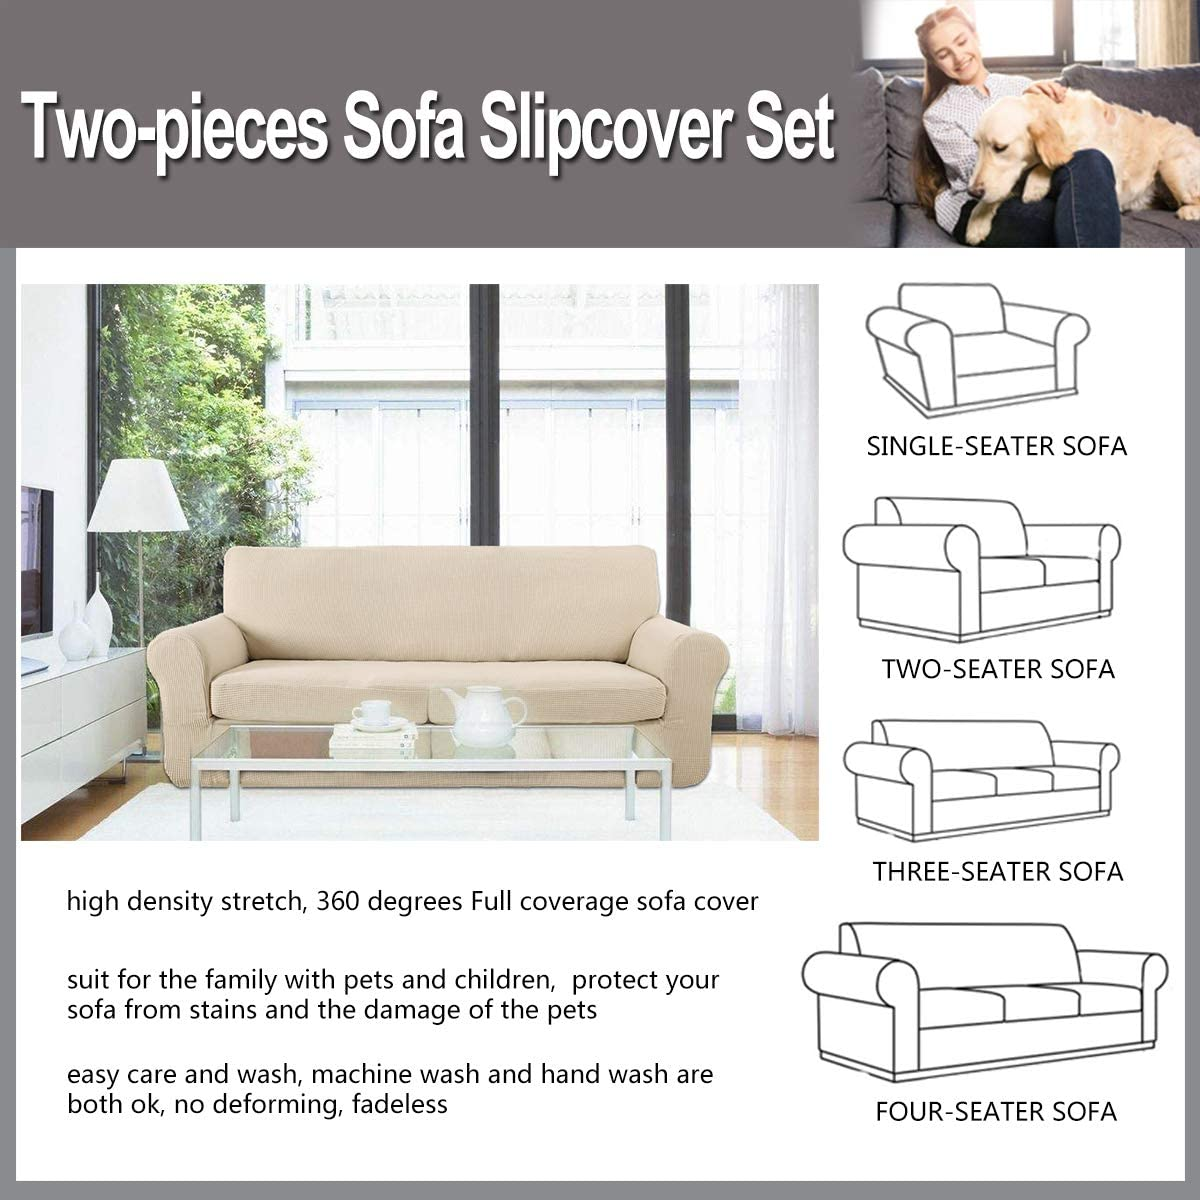 Mingfuxin 2PCS Anti-Slip Sofa Covers,Upgraded Polyester Fabric Stretch Sofa Slipcovers Furniture Protector with Separated Sitting Cushion Covers and Pillowcase Cover 1 Seater//Chair, Coffee